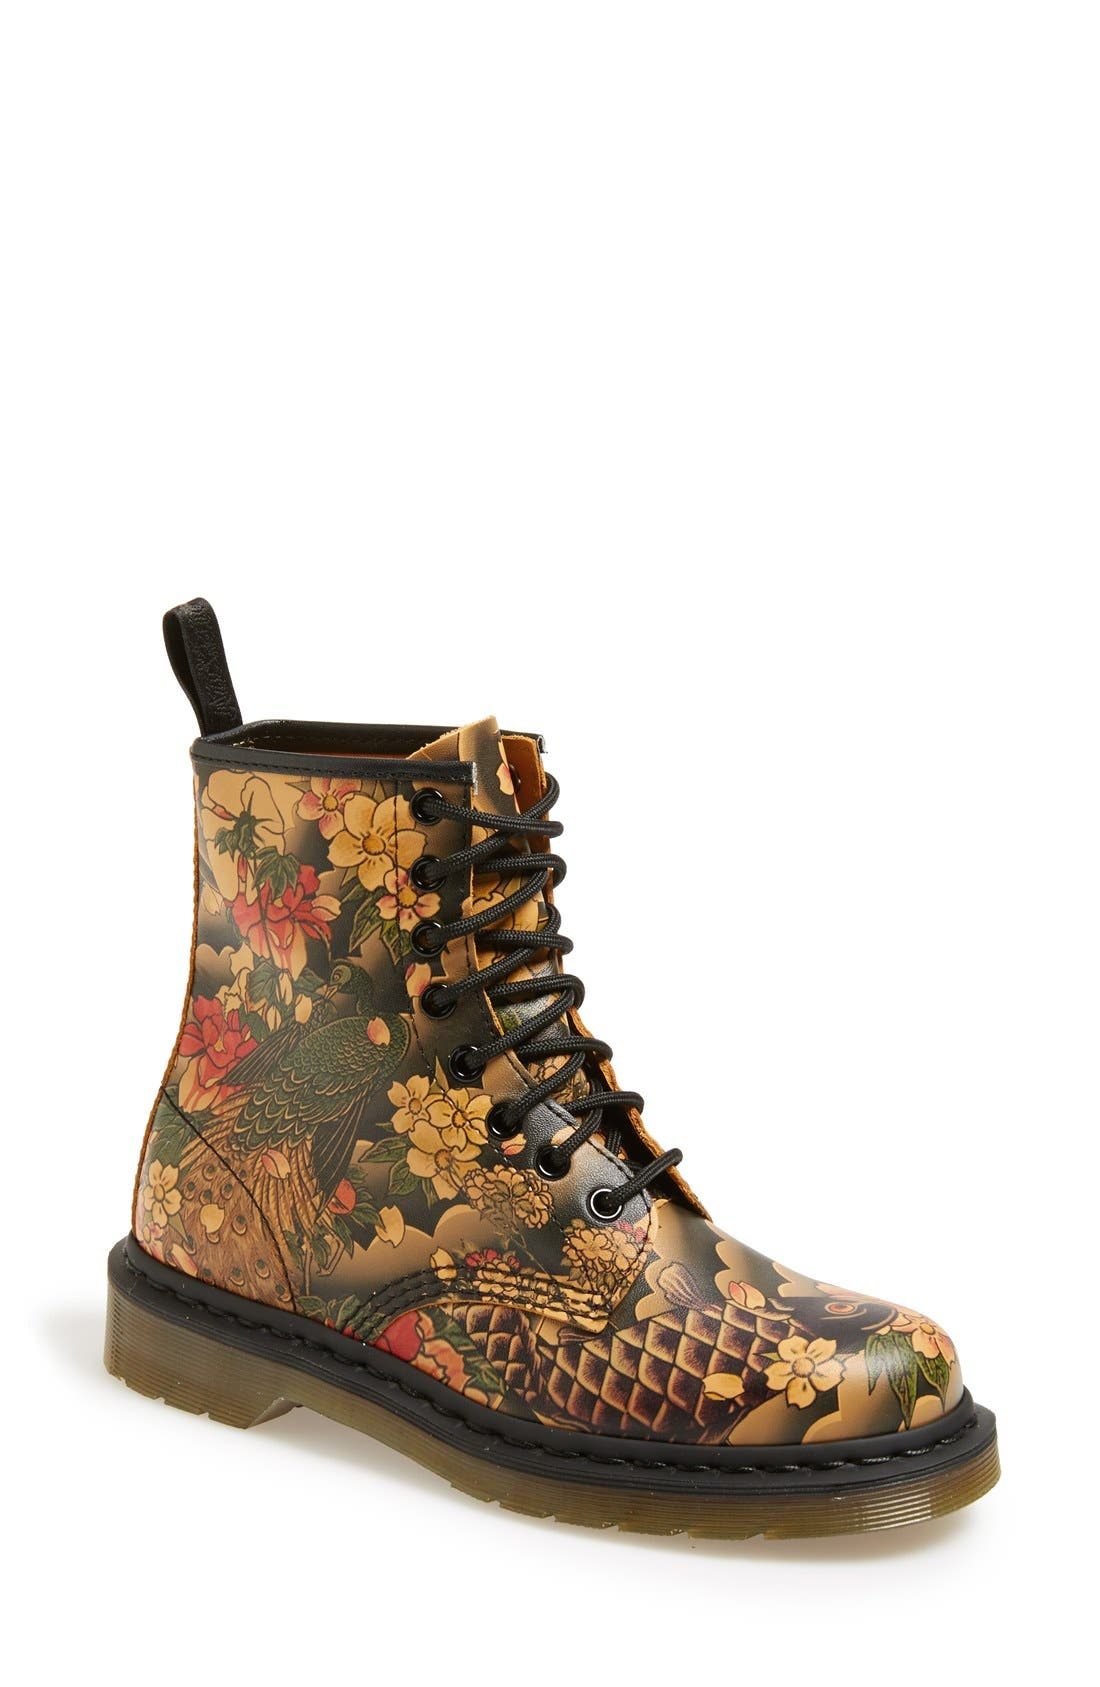 Alternate Image 1 Selected - Dr. Martens '1460 W' Boot (Women)